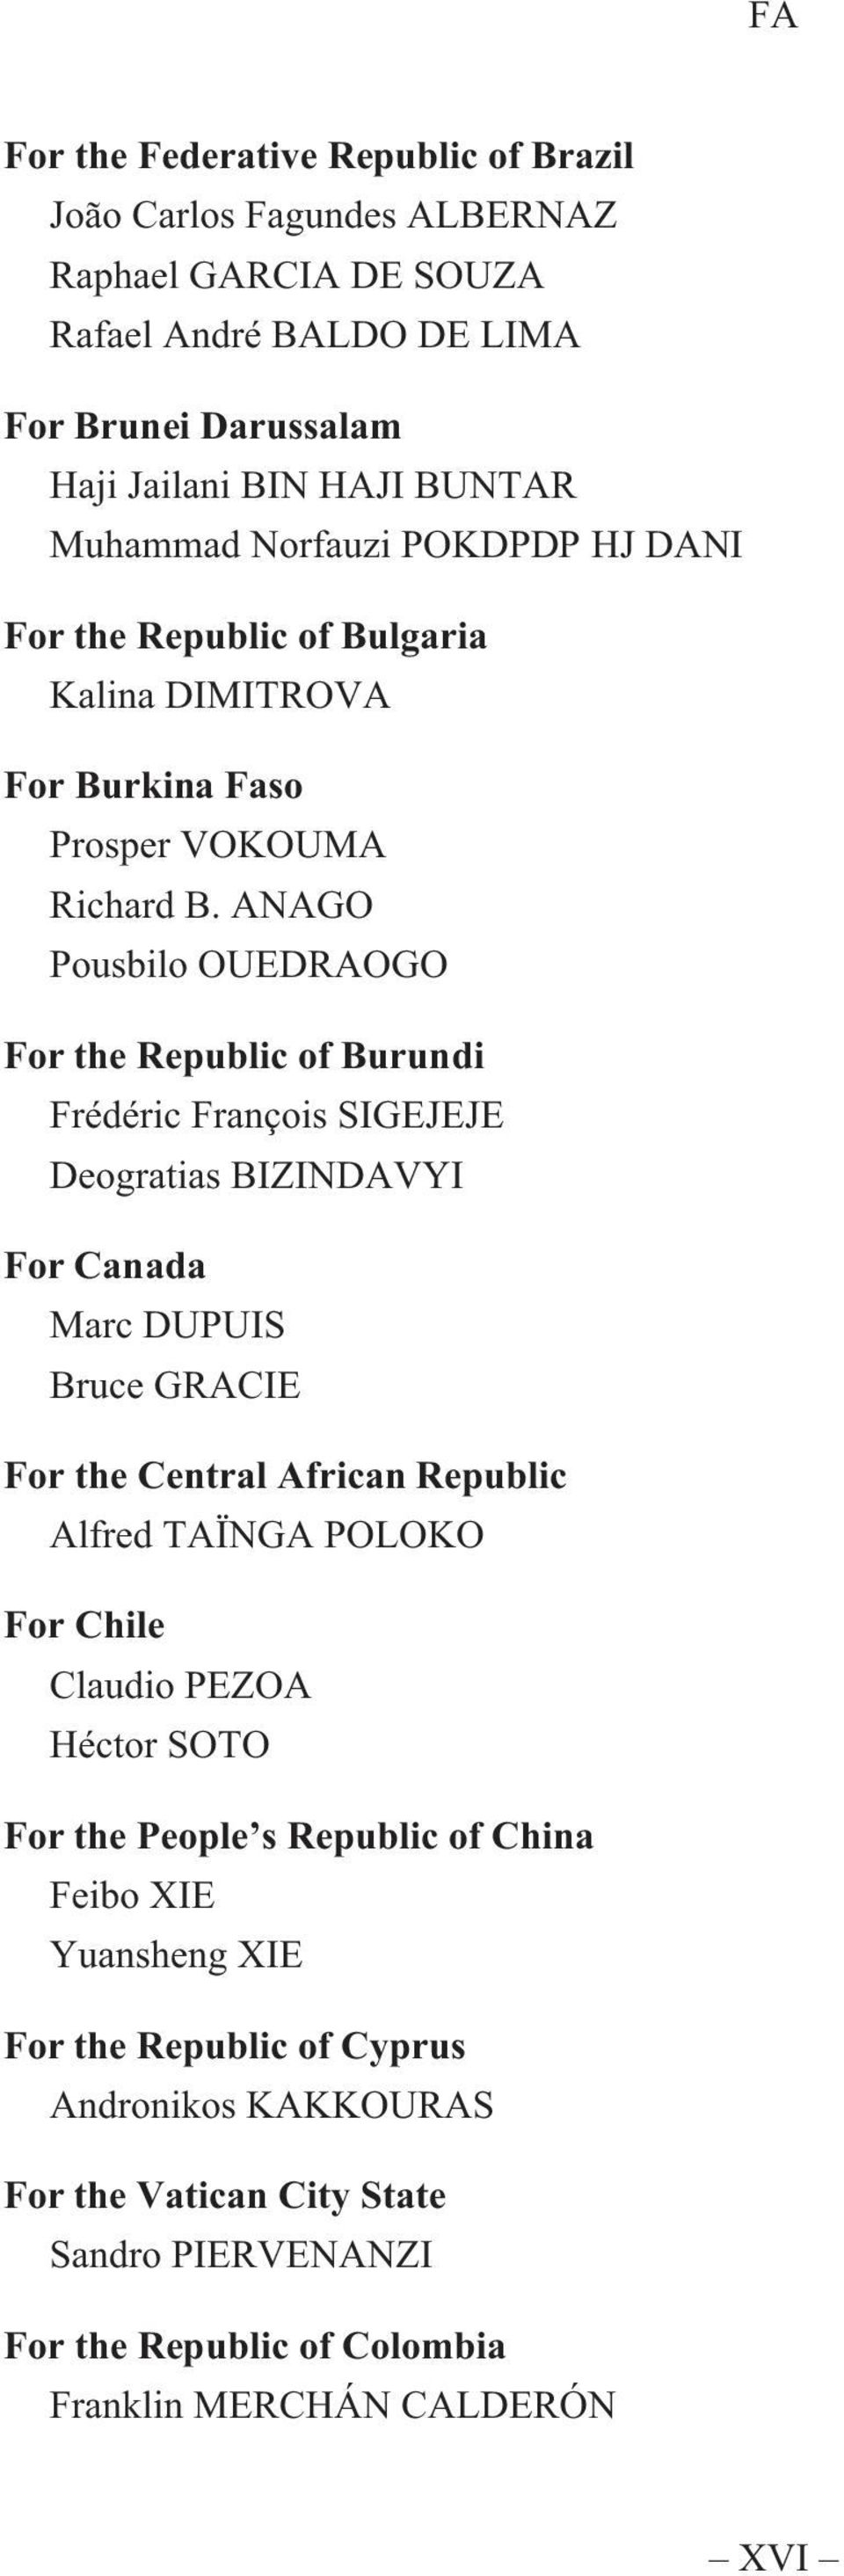 ANAGO Pousbilo OUEDRAOGO For the Republic of Burundi Frédéric François SIGEJEJE Deogratias BIZINDAVYI For Canada Marc DUPUIS Bruce GRACIE For the Central African Republic Alfred